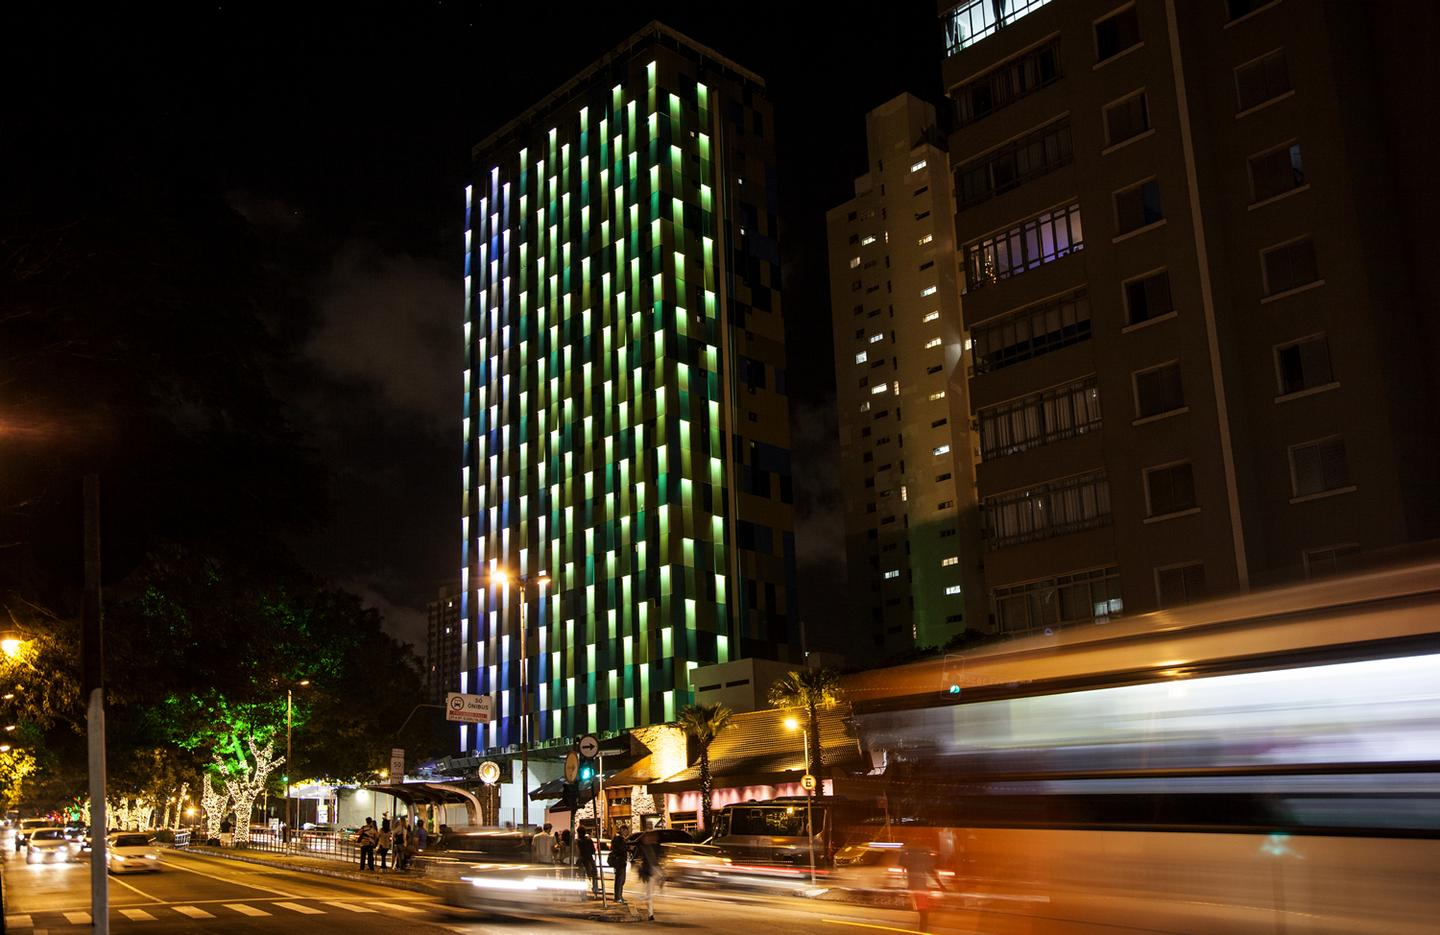 The façade comprises a 30-story pixelated sheet of metal